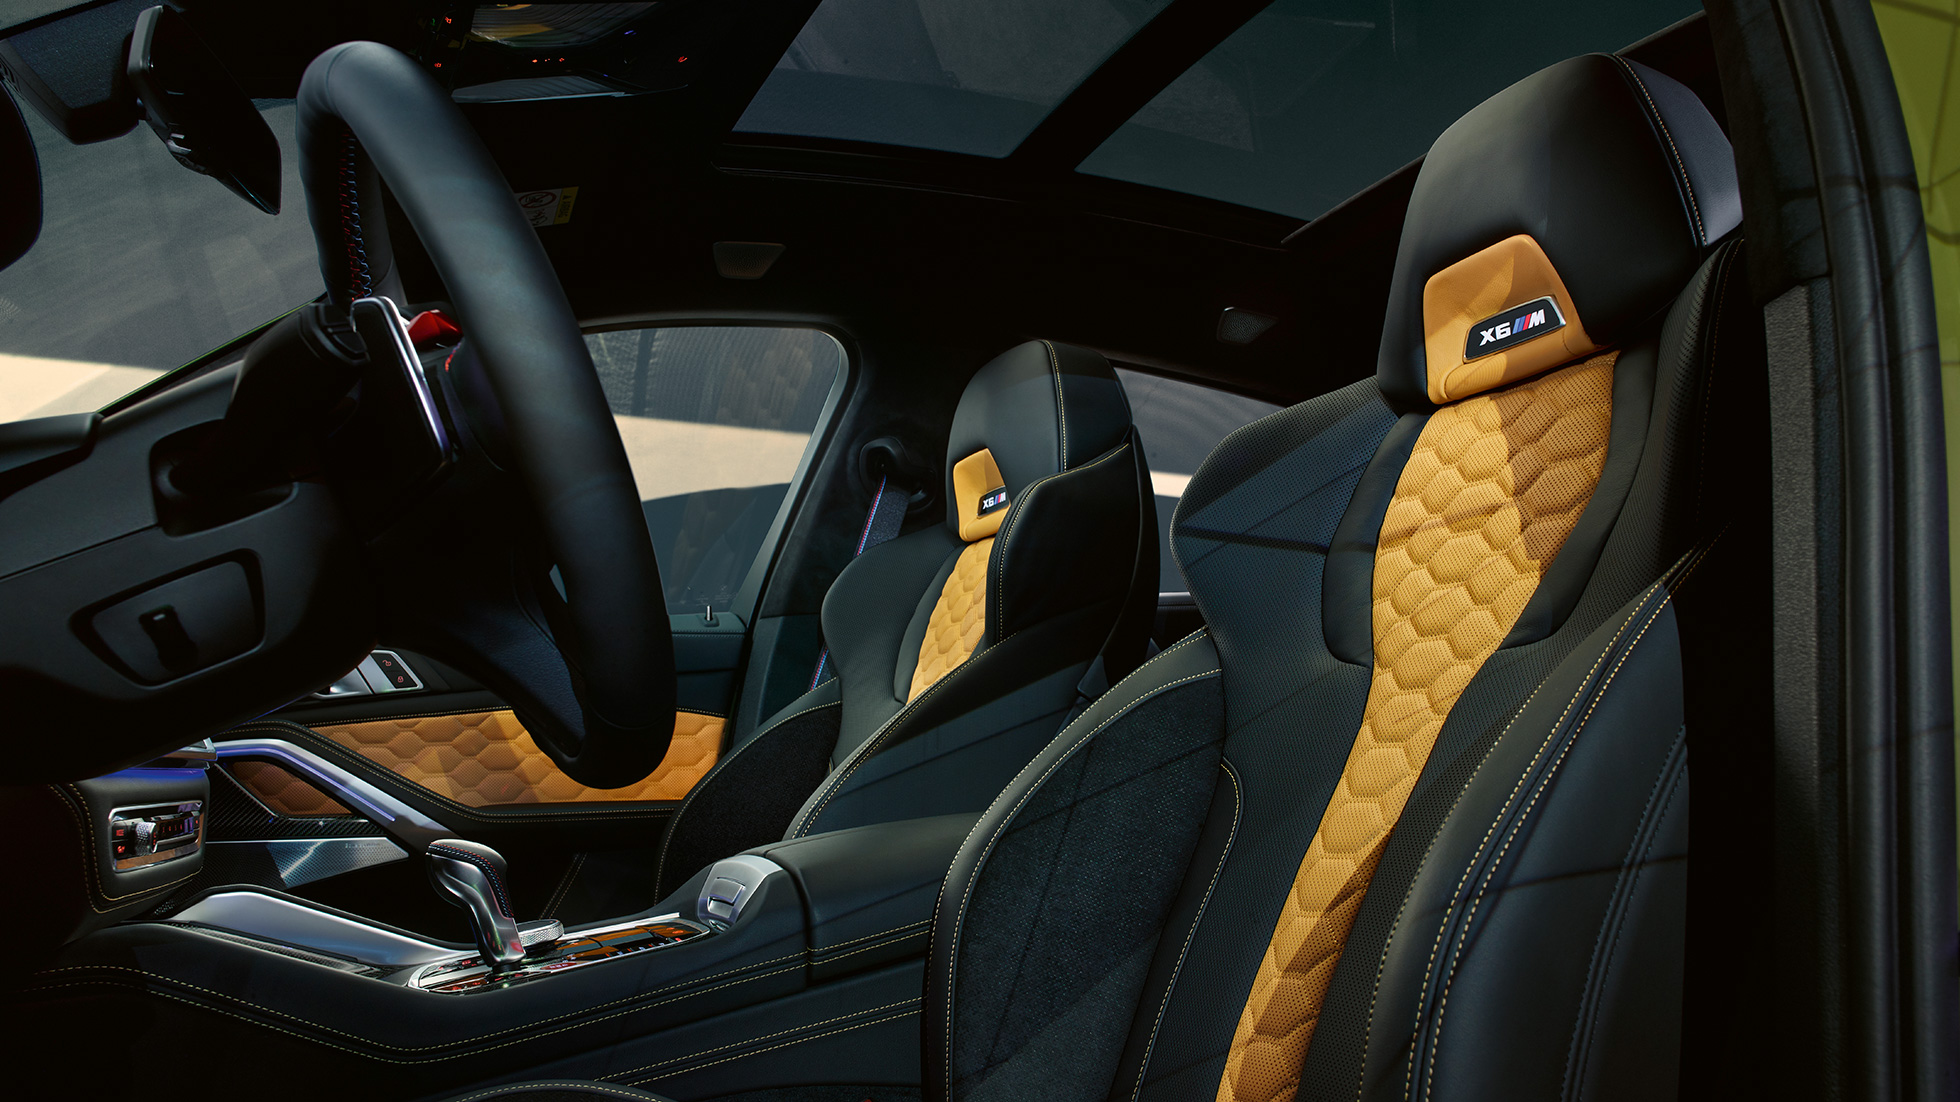 M Multifunctional seats with illuminated X6 M logo BMW X6 M Competition F96 interior